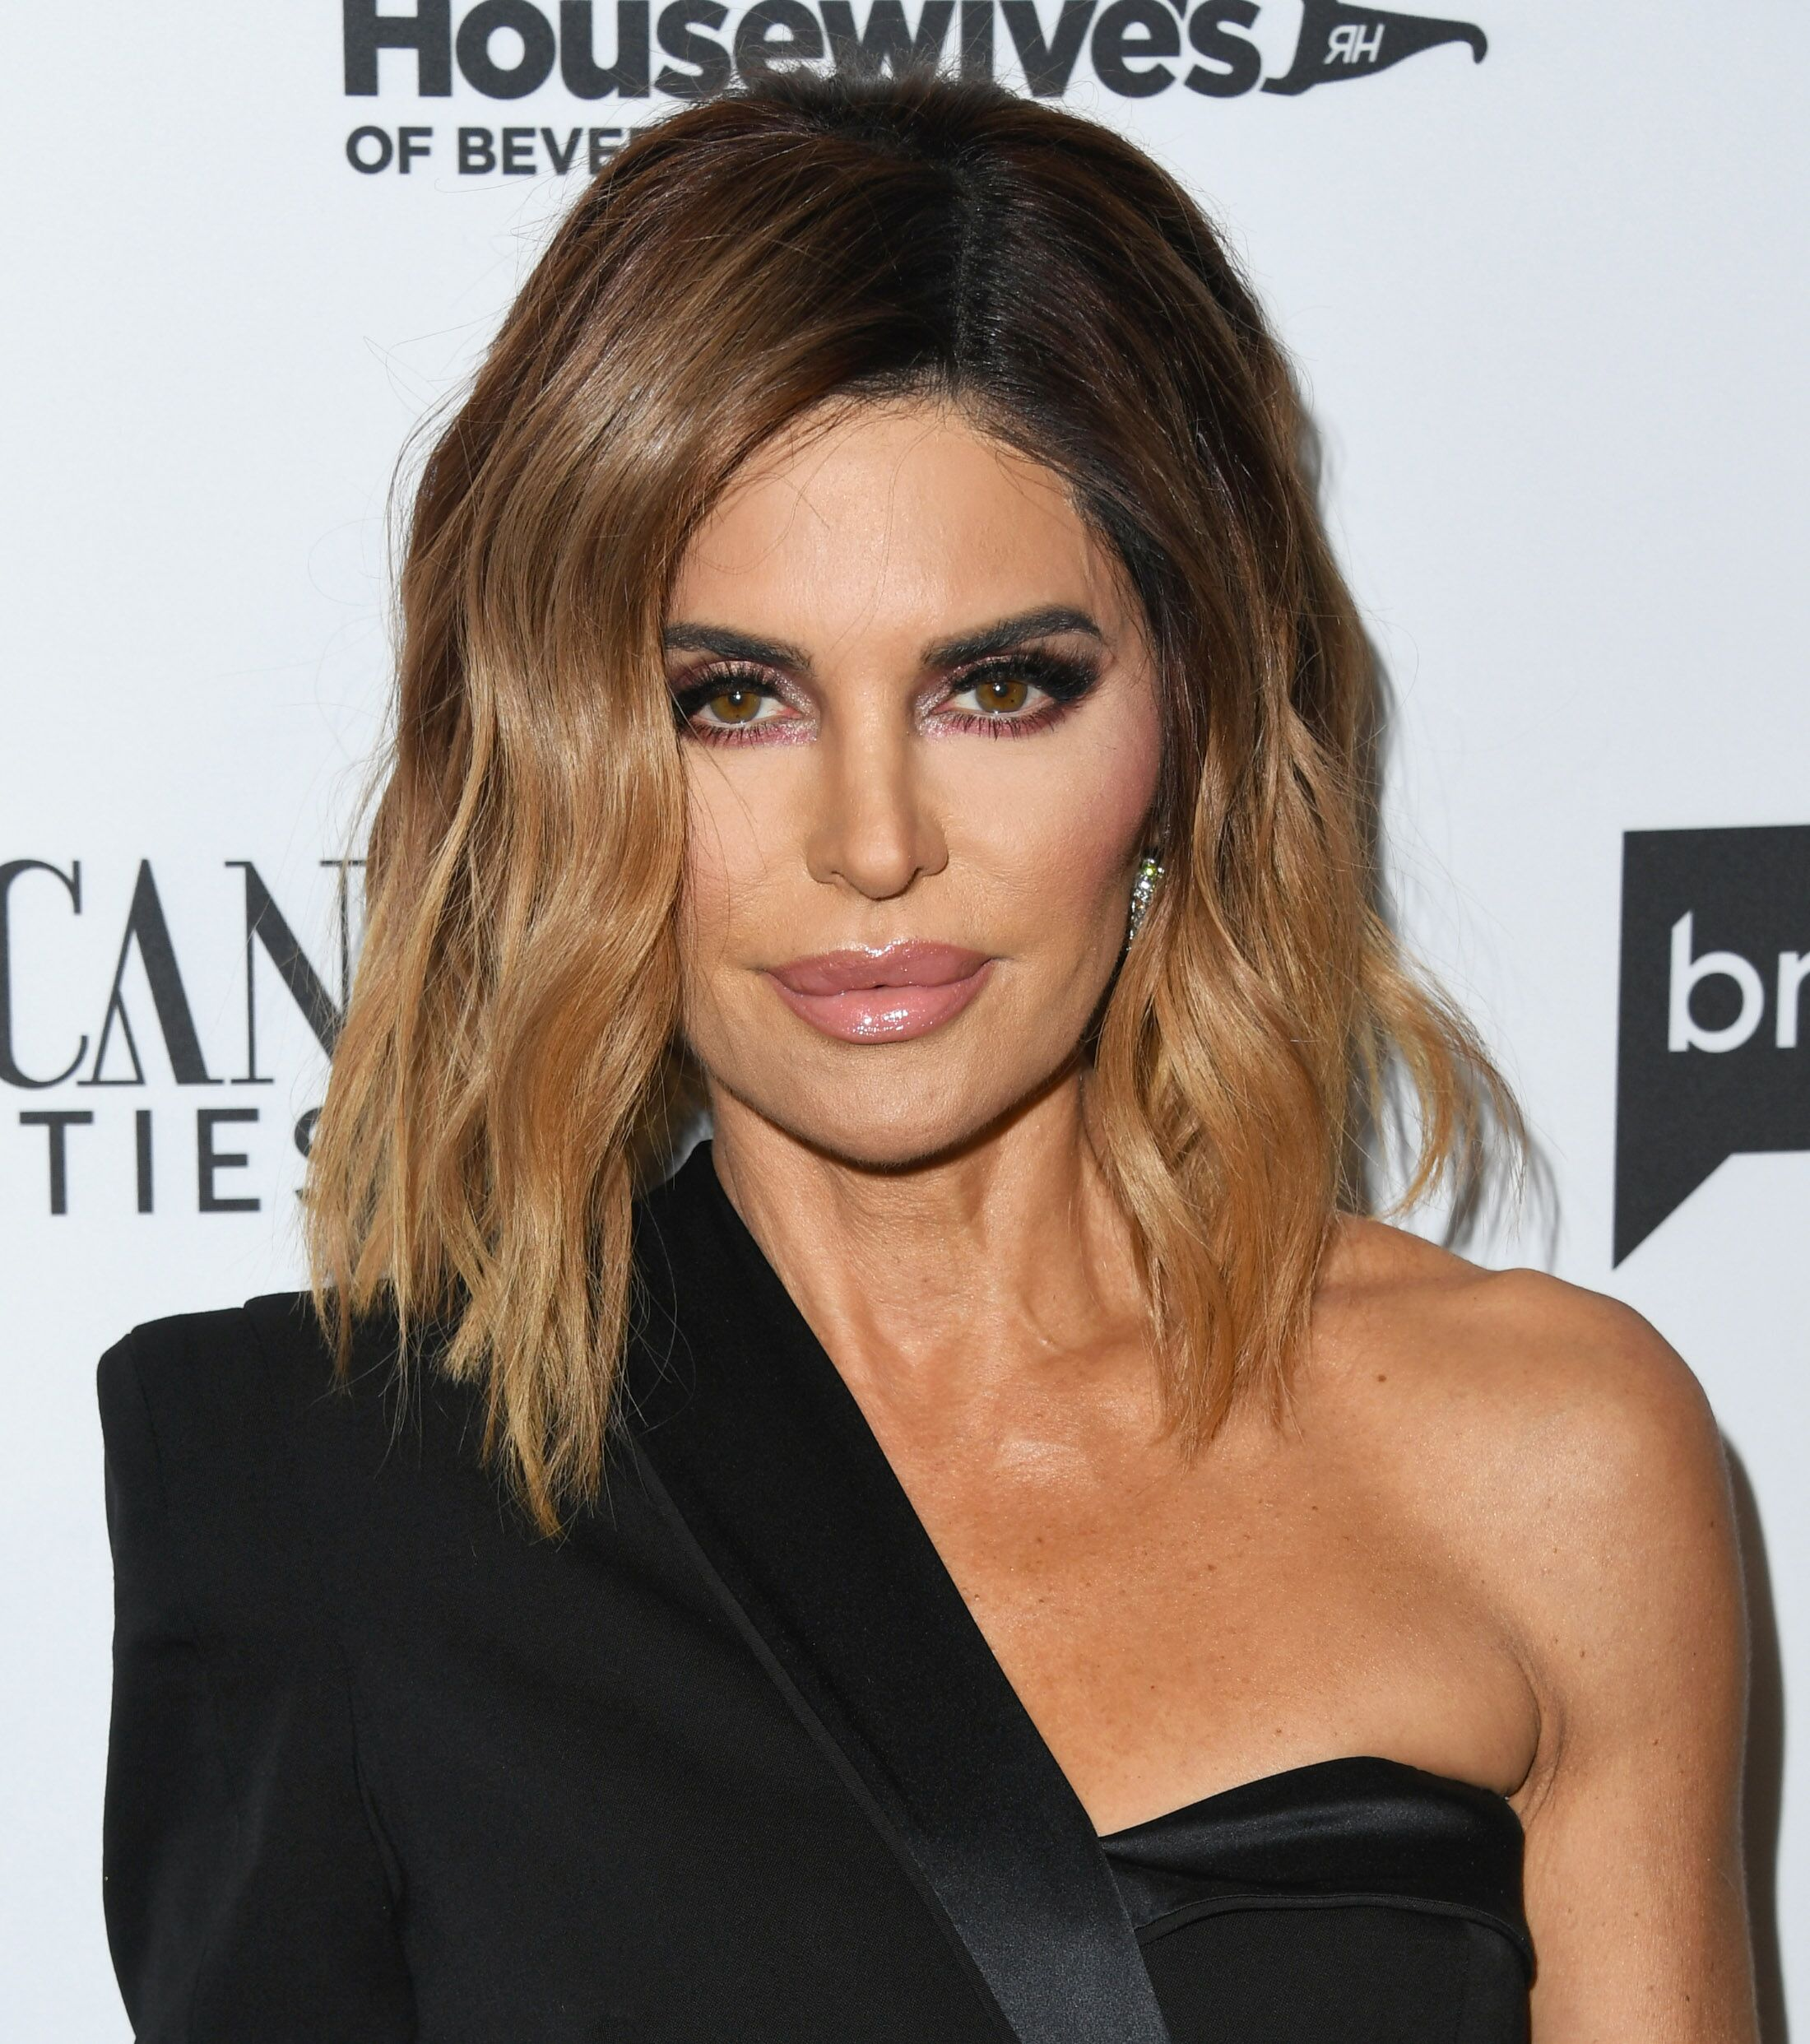 """Lisa Rinna attends Bravo's Premiere Party For """"The Real Housewives Of Beverly Hills"""" Season 9 And """"Mexican Dynasties""""at Gracias Madre on February 12, 2019 in West Hollywood, California 